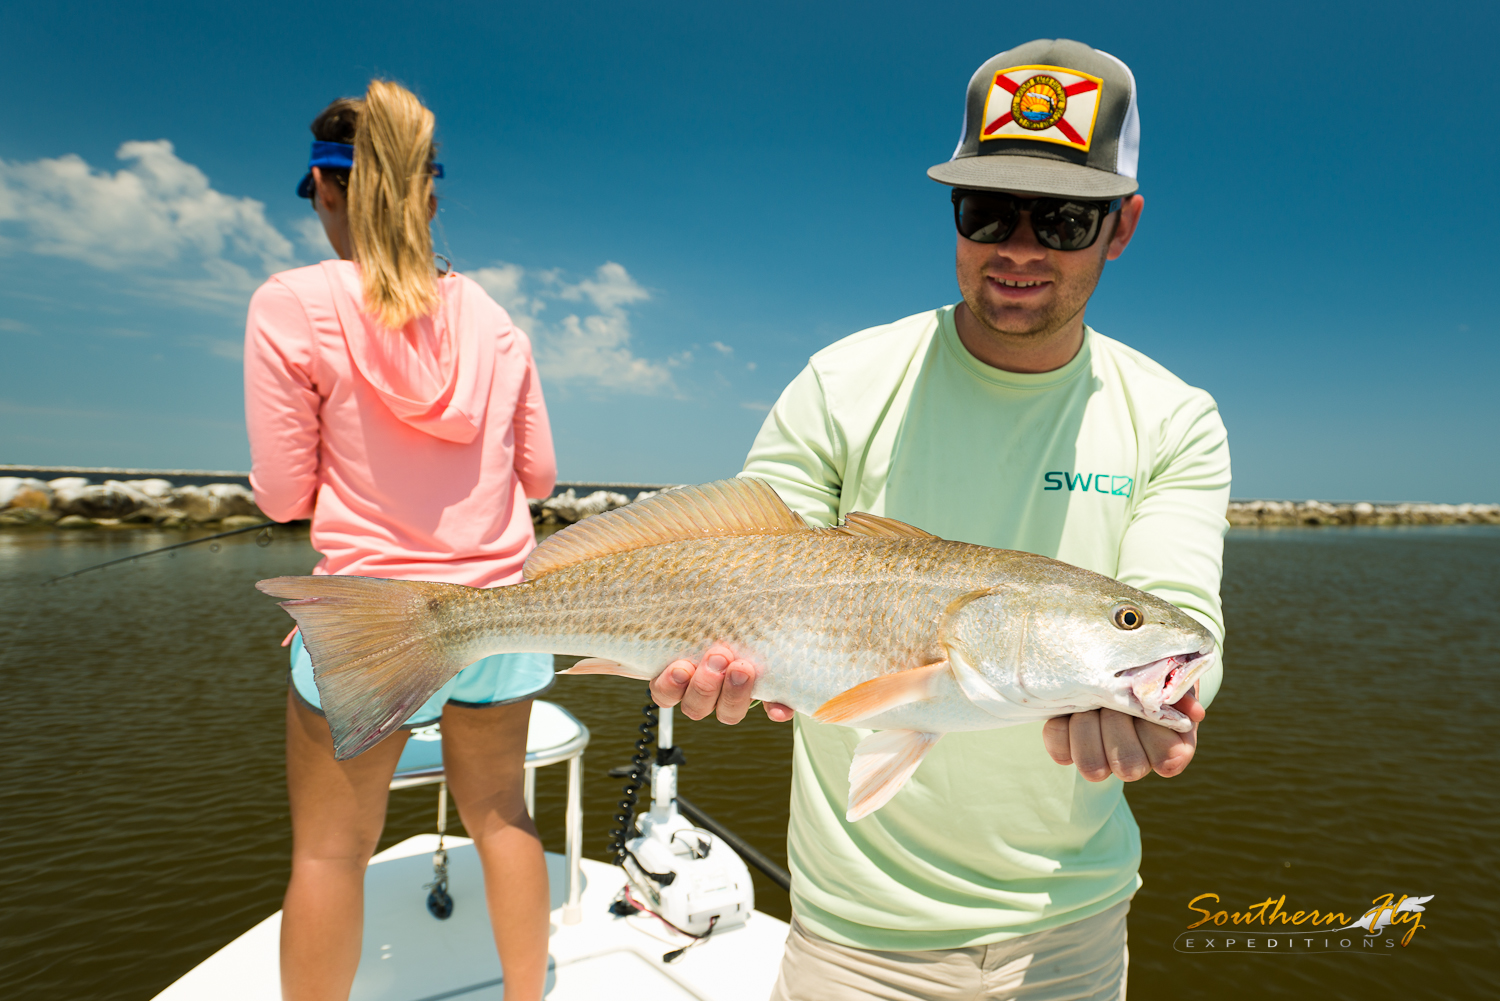 Fly Fishing New Orleans with the best redfish guide in louisiana - Southern Fly Expeditions